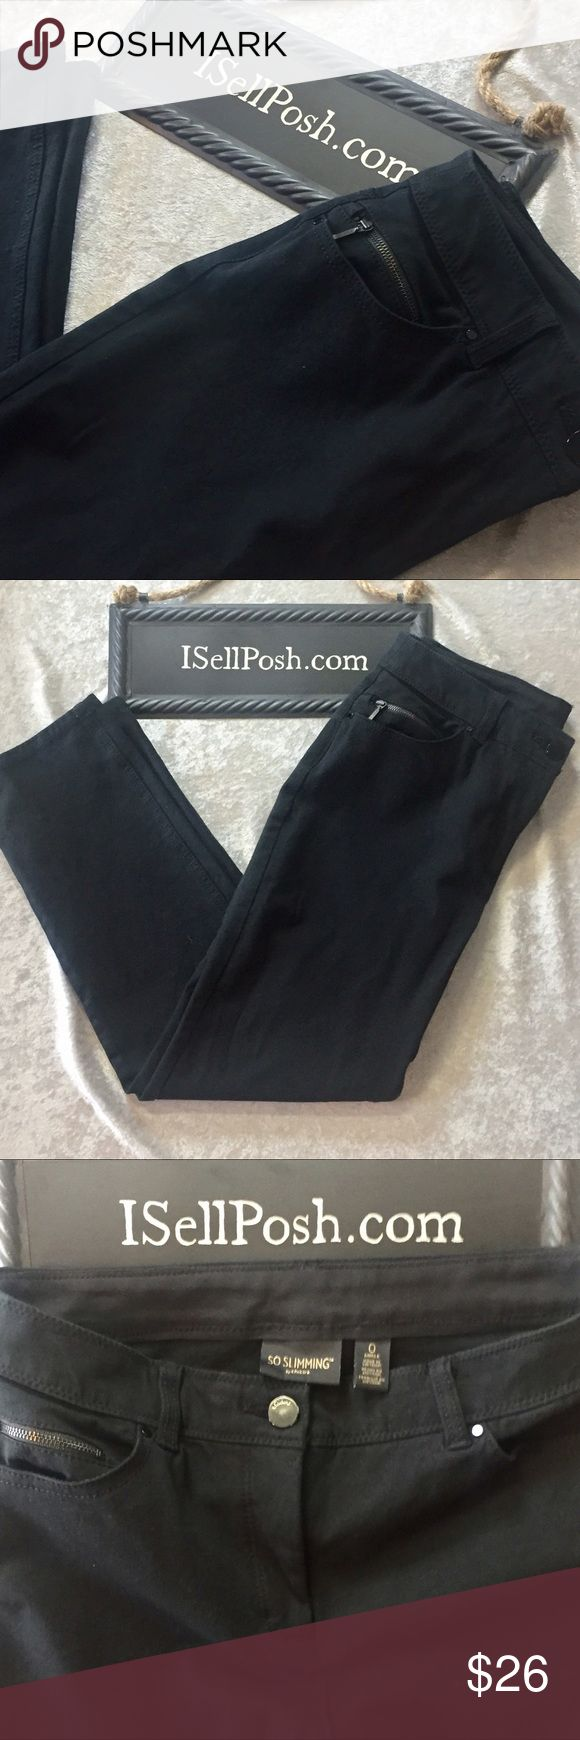 Black So Slimming jeans by Chico's sz 4 EUC Black jeans by Chico's. Style is So Slimming Ankle and is a Chico's size 0 which converts to a size 4. Size chart provided. Chico's Jeans Ankle & Cropped